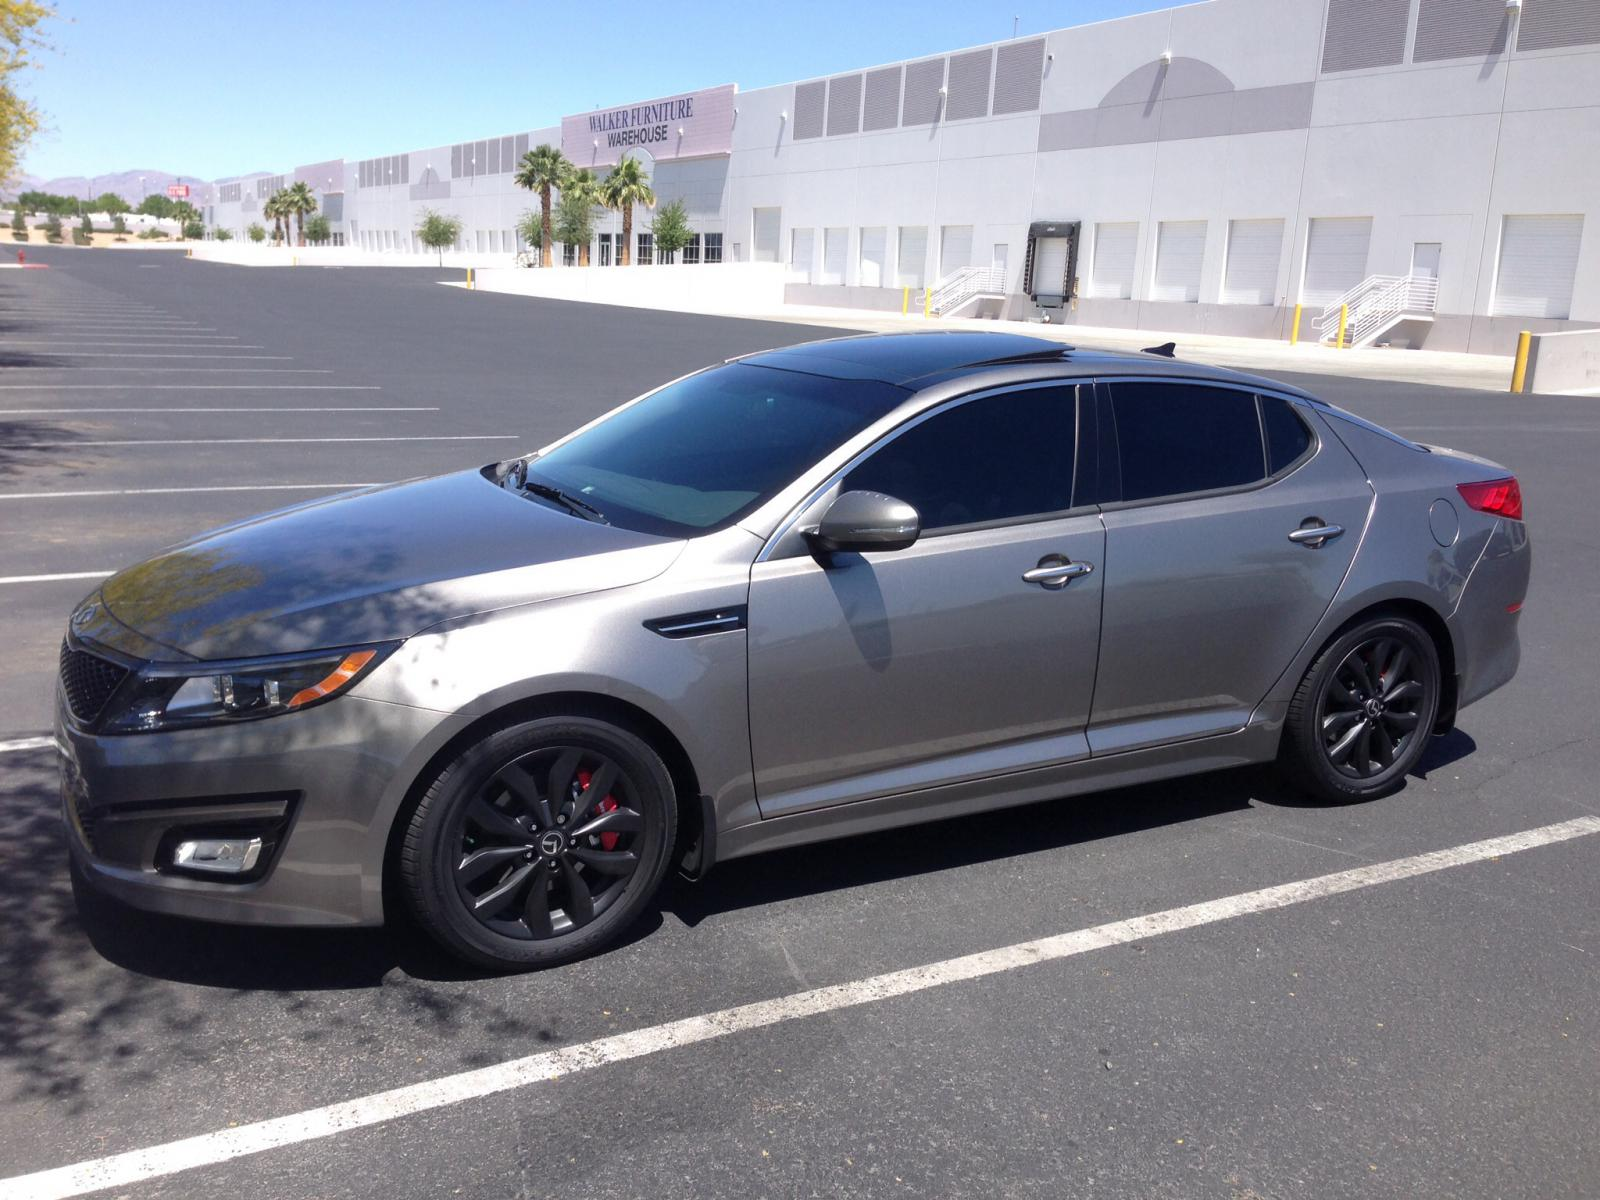 My custom kia optima from las vegas first mods imageg my custom kia optima from las vegas first mods imageg sciox Images